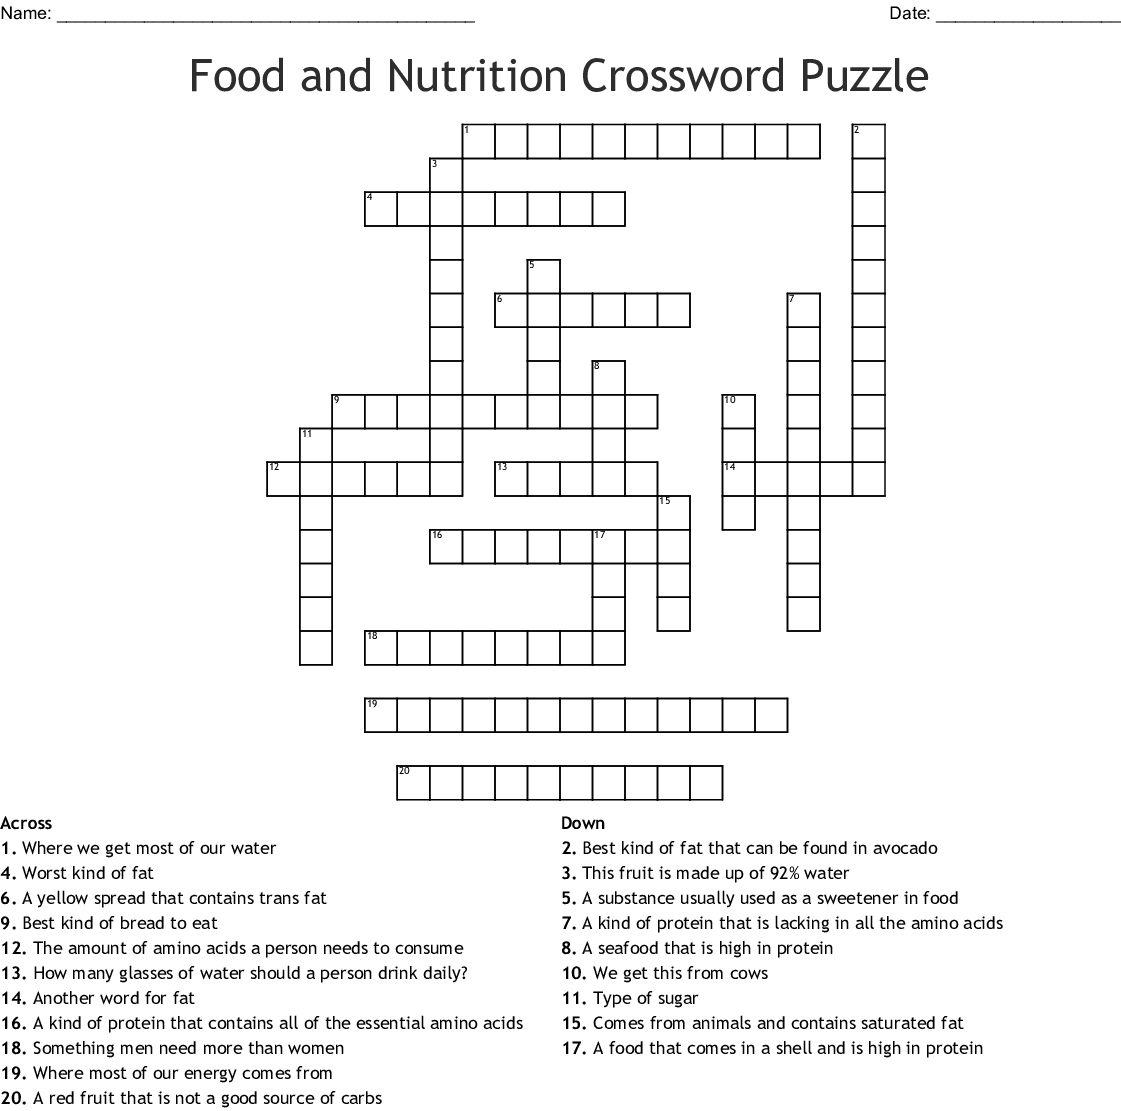 Food And Nutrition Crossword Puzzle